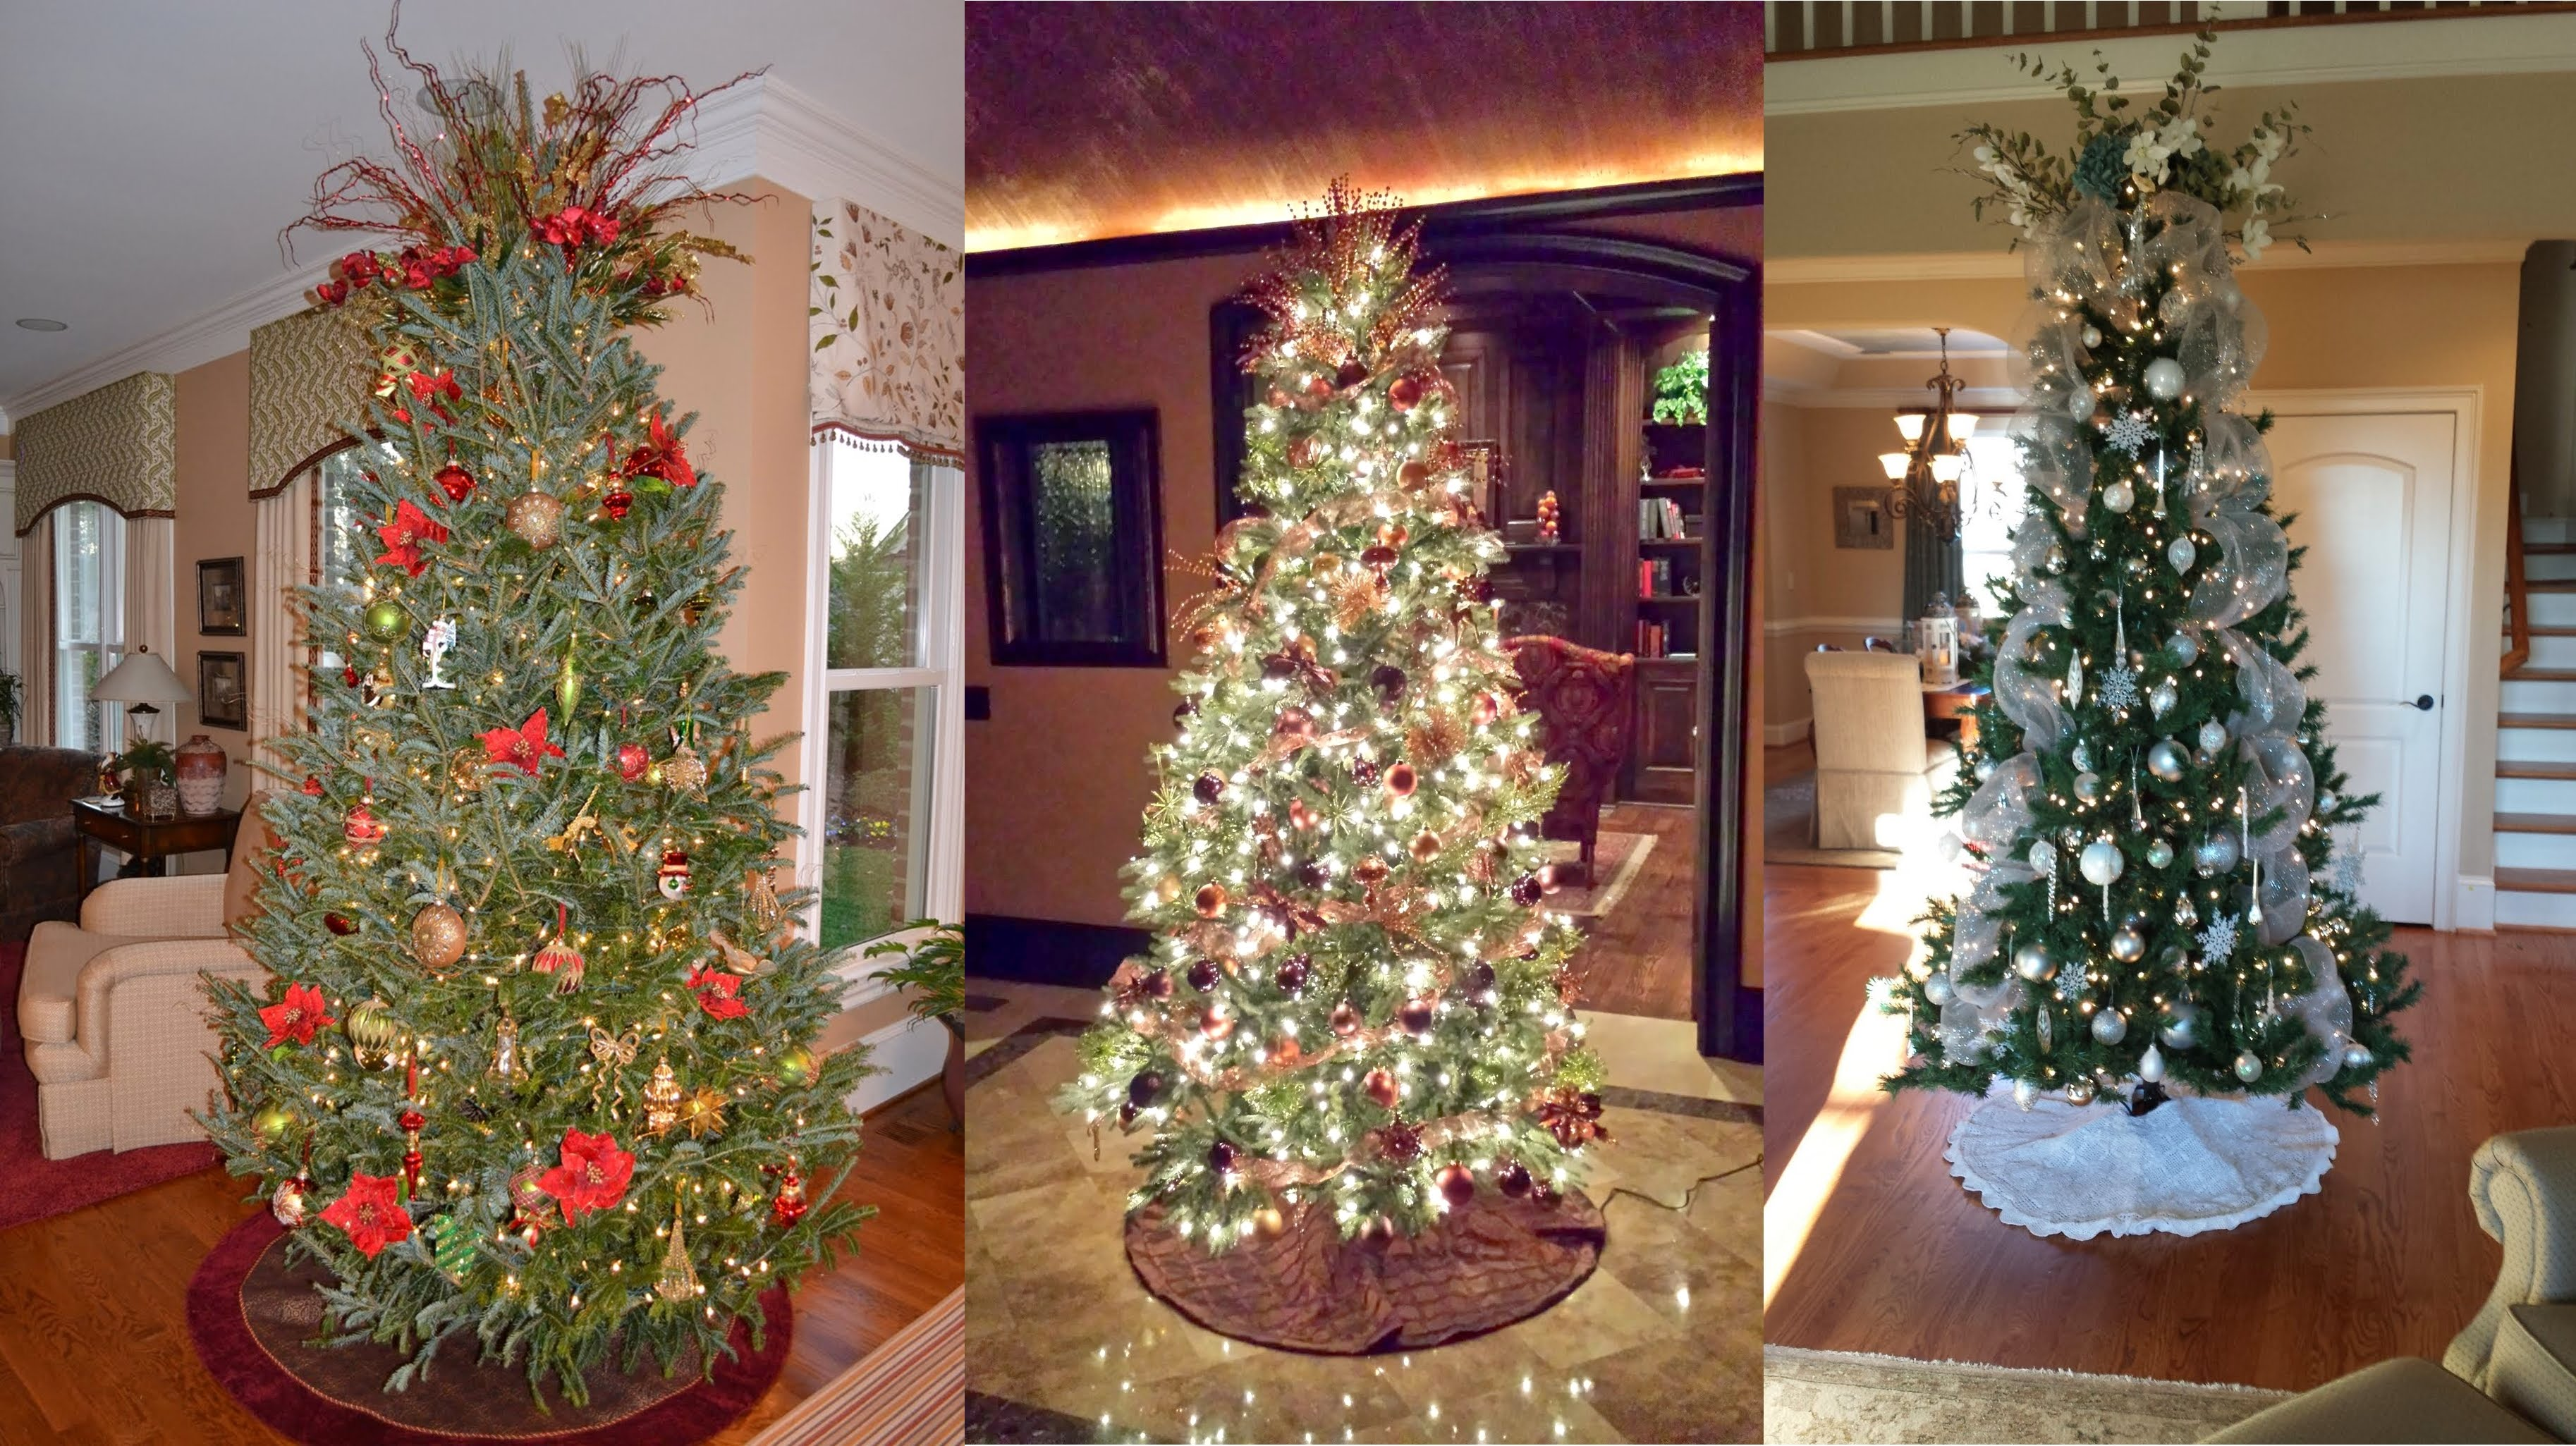 charlotte nc holiday decorating services real estate home staging interior room redesign interior design services charlotte nc - Christmas Decorating Services